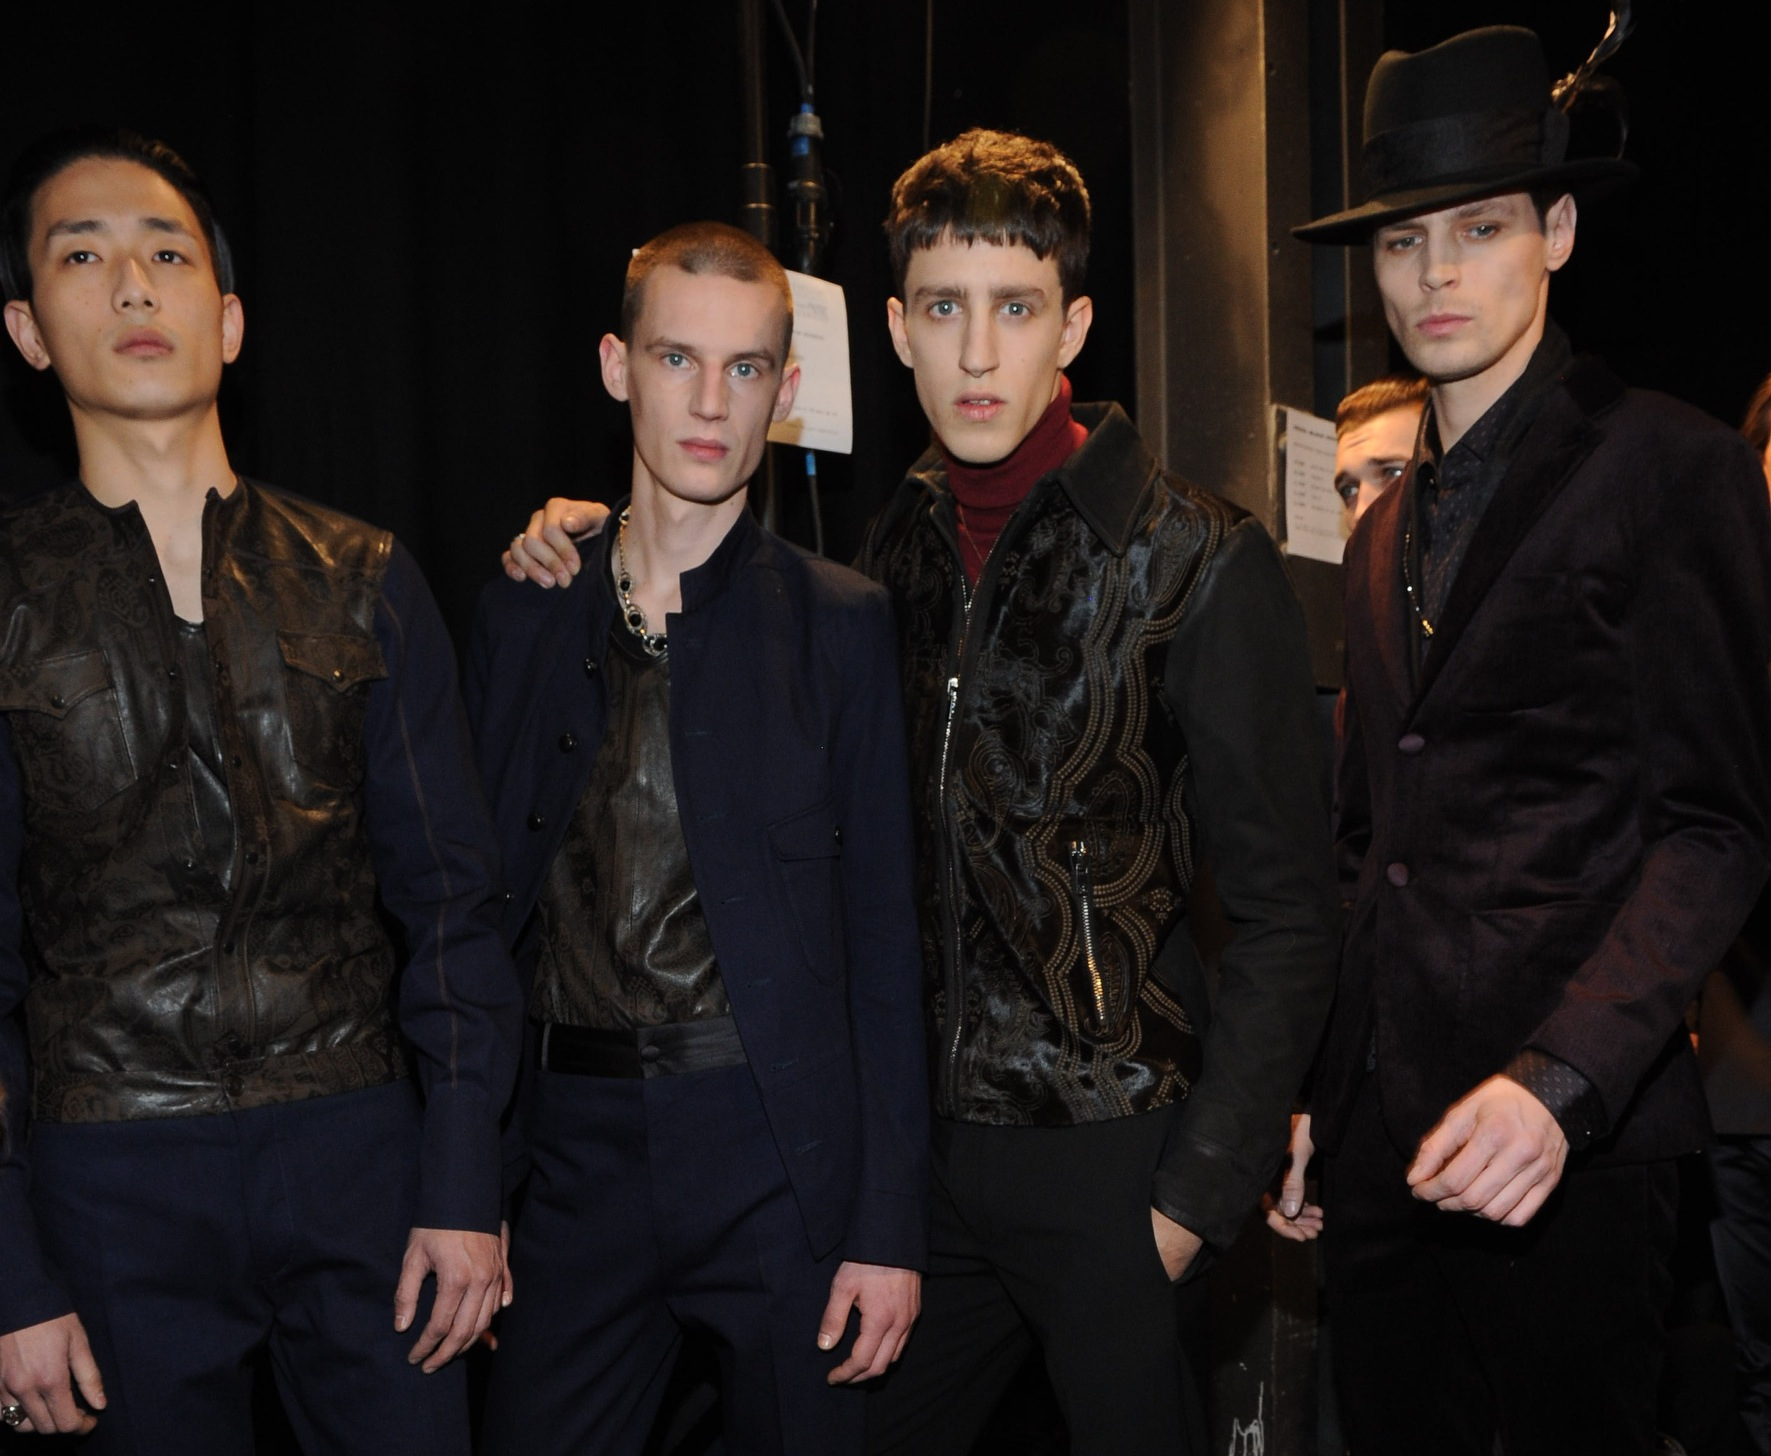 Diesel Black Gold Fall 2013 Menswear backstage male models pitti uomo milan fashion week